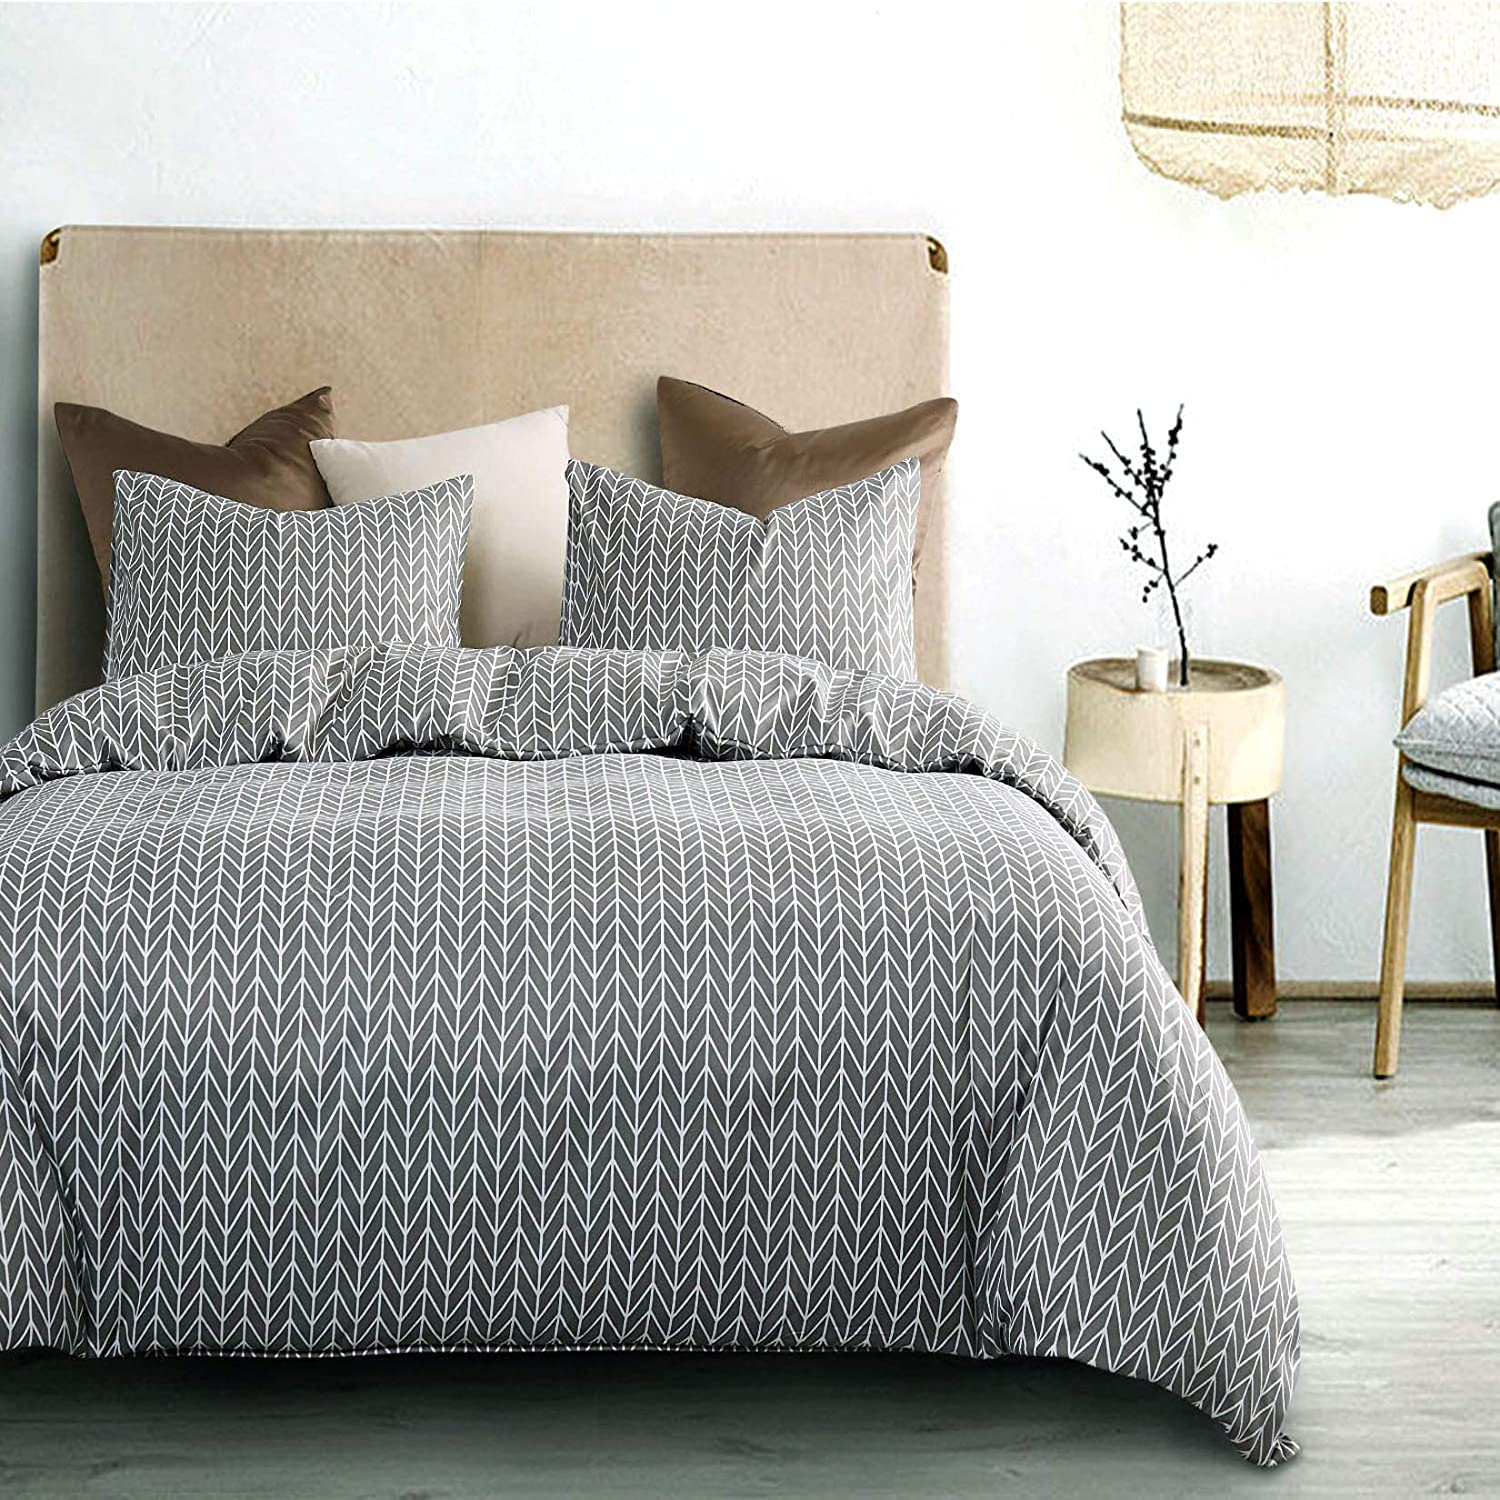 Wake In Cloud - Gray Chevron Comforter Set, Zig Zag Geometric Modern Pattern Printed on Grey, Soft Microfiber Bedding